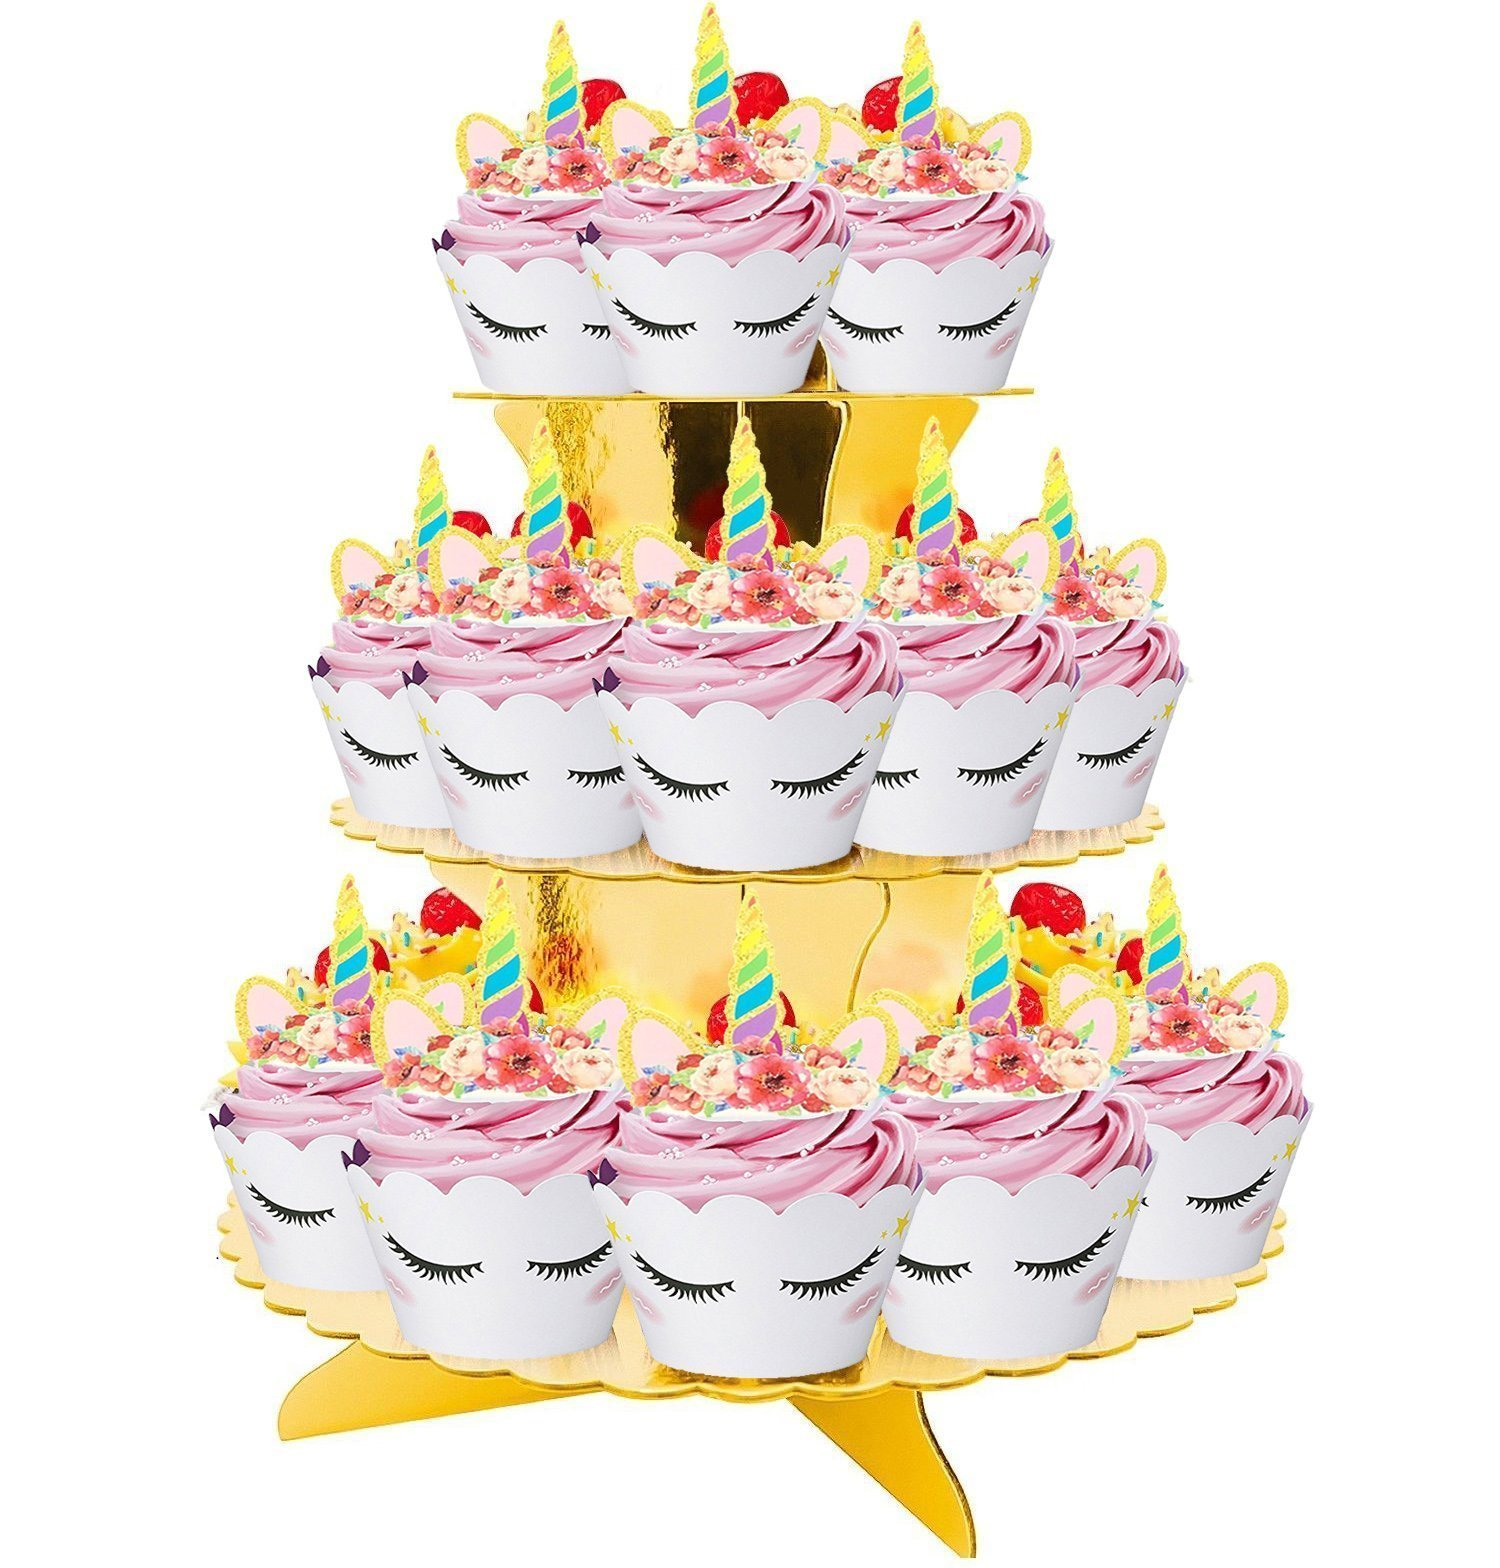 Rainbow Unicorn Cupcake Toppers and Wrappers w BONUS Gold Cupcake Stand - Themed Glitter Horn Cake Topper + Rainbow Wrapper DIY Baking Decorations Kit, Kids Birthday Party Supplies Accessories| 48pcs by Quality Party Supplies (Image #3)